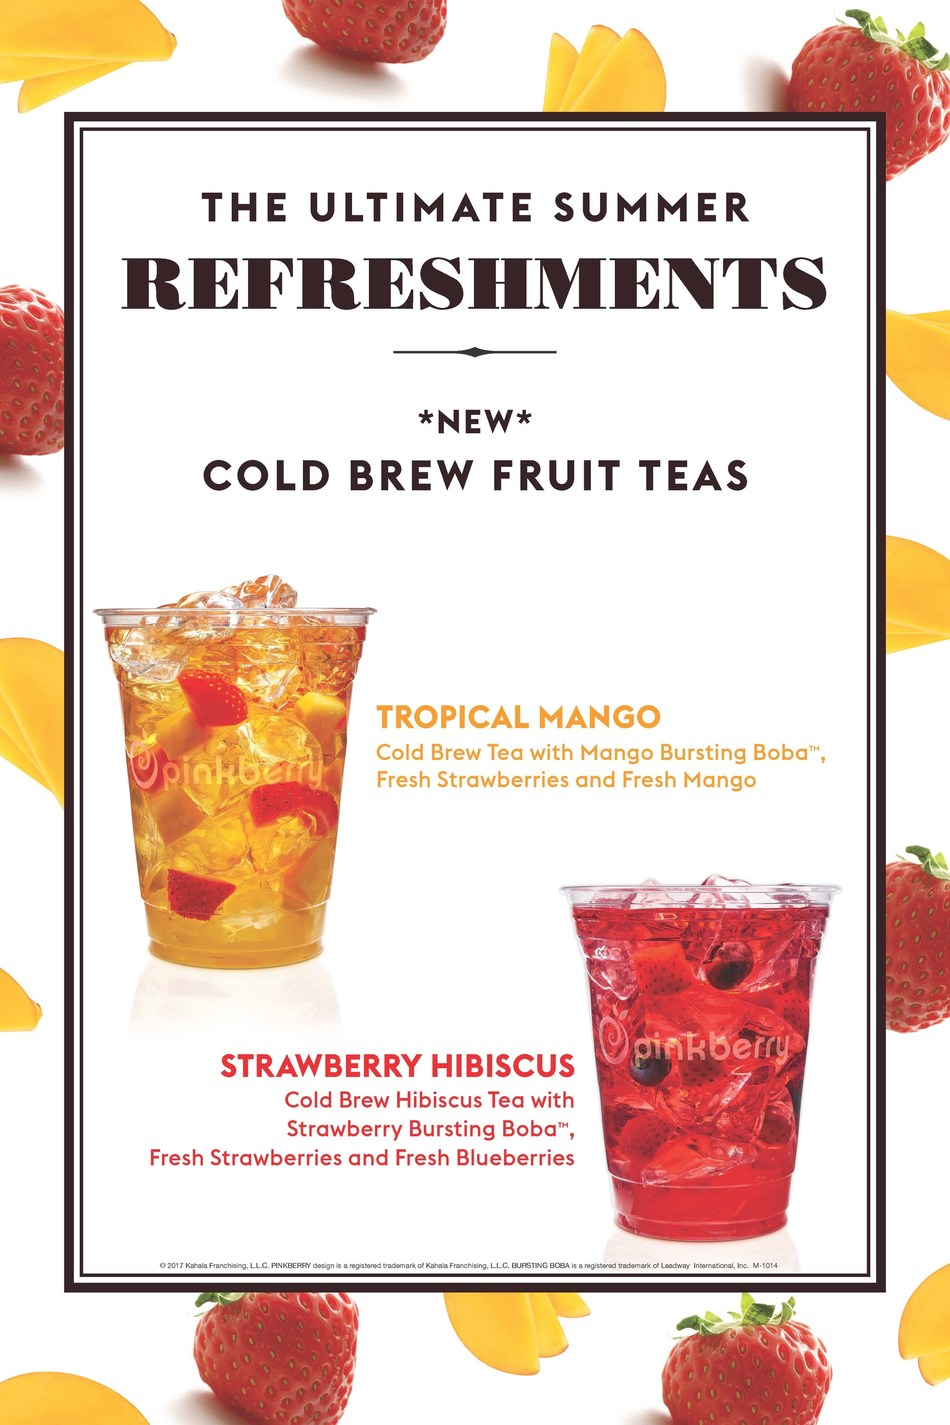 Blueberry Muffin Frozen Yogurt and the Strawberry Hibiscus and Tropical Mango Cold Brew Fruit Teas are available for a limited time only.